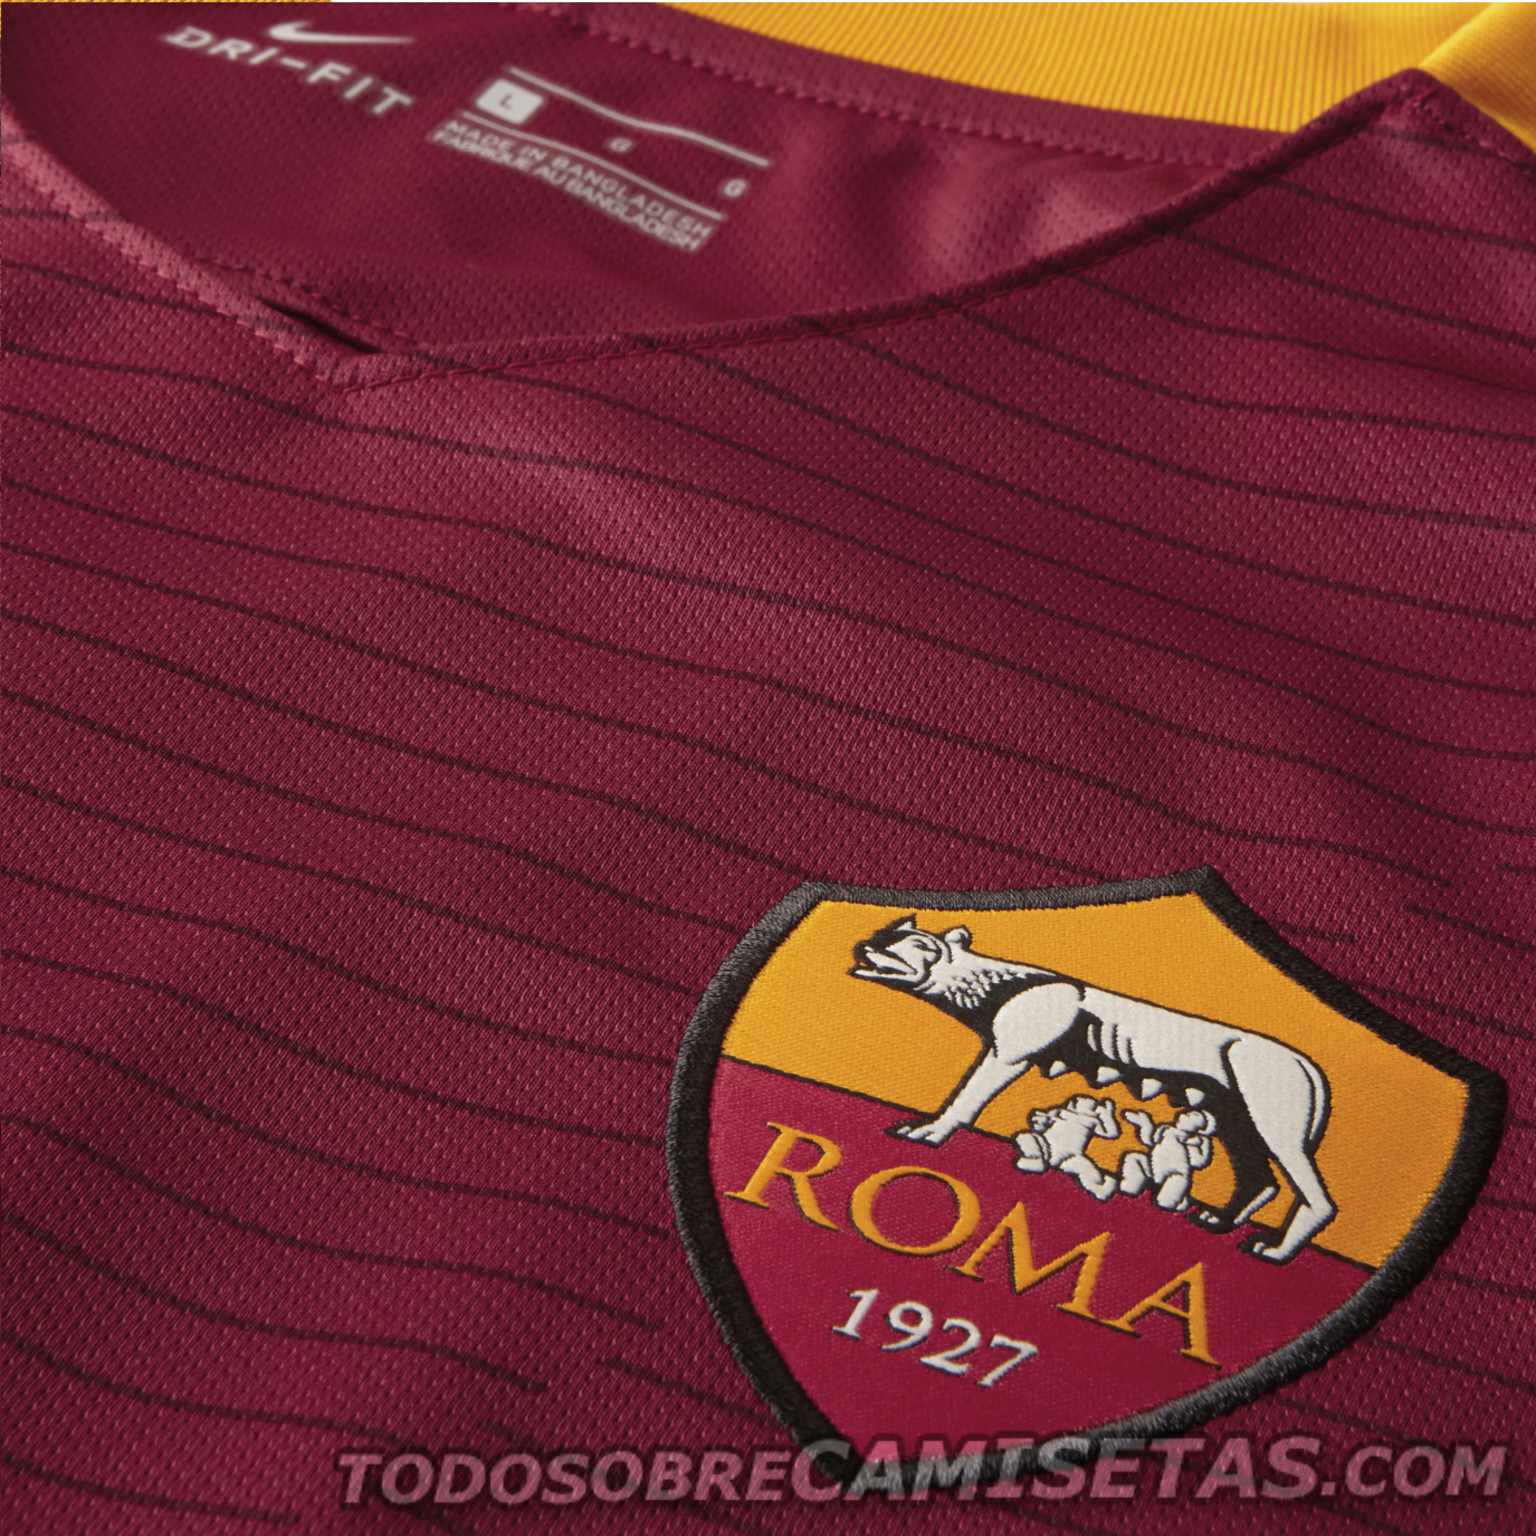 AS-Roma-2016-17-NIKE-new-home-kit-7.jpg